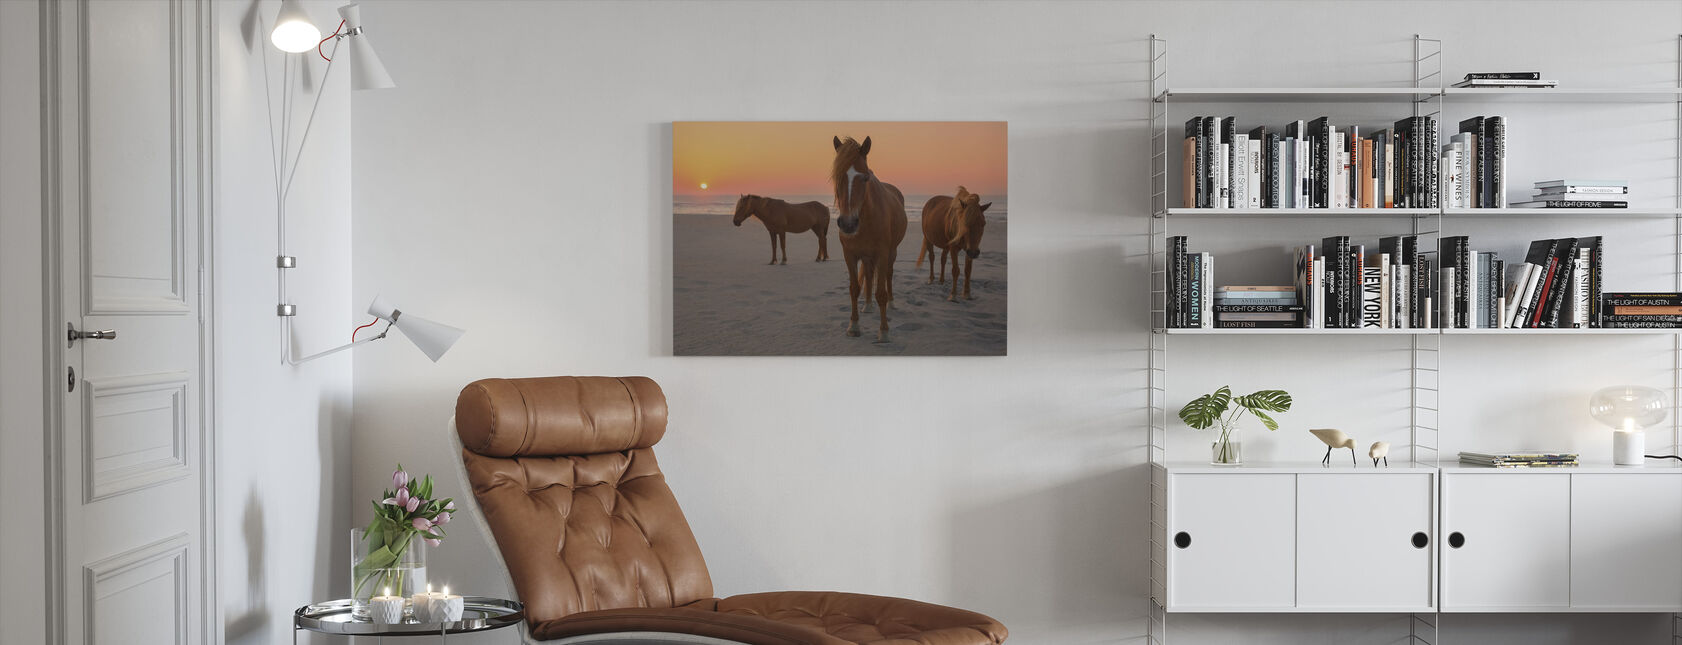 Chestnut Horses on Sunset Beach - Canvas print - Living Room